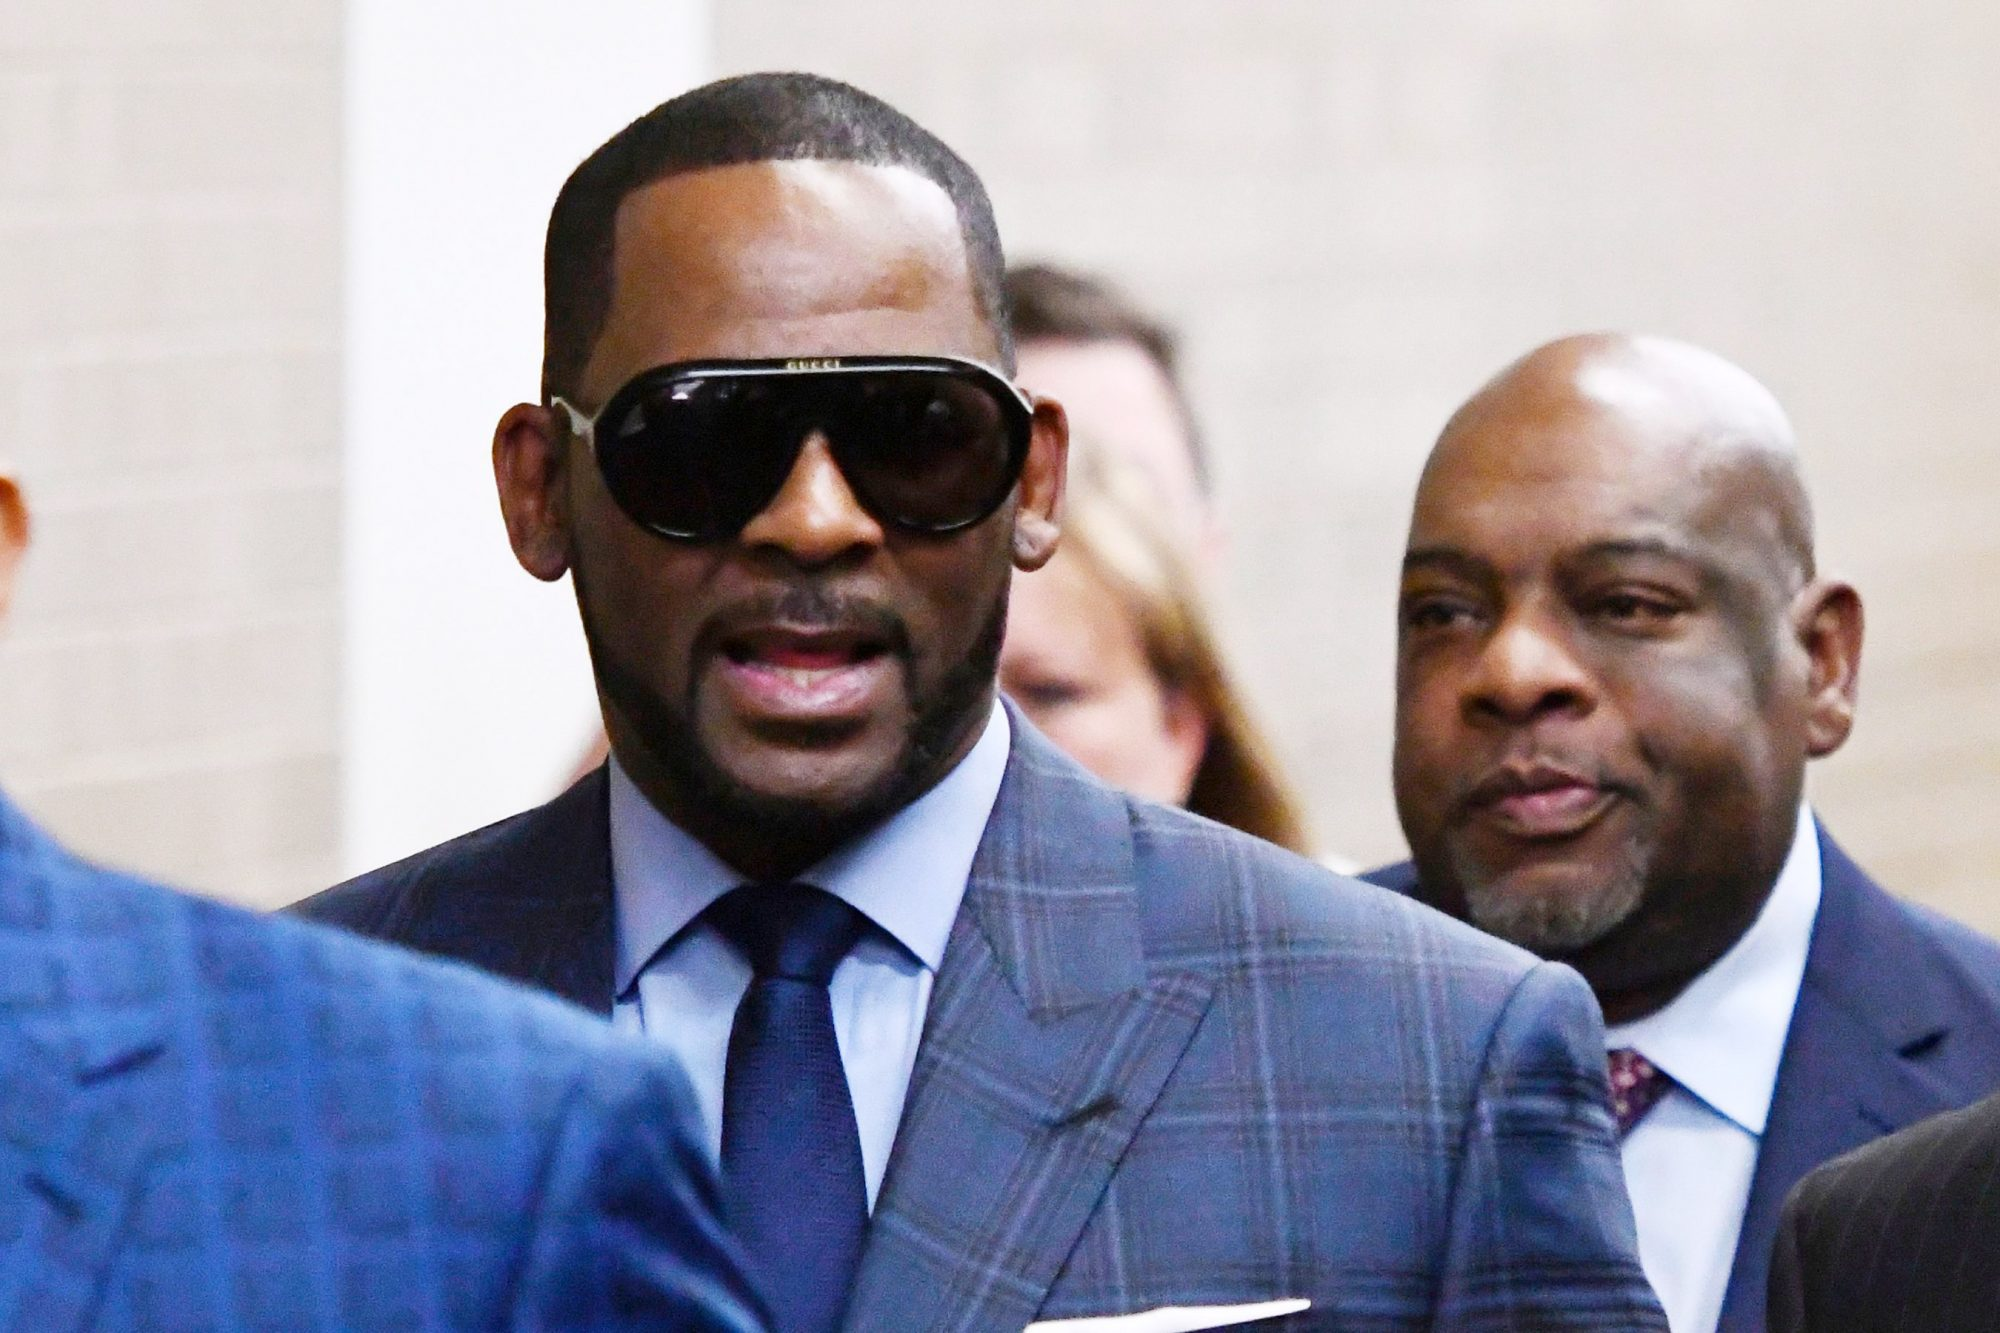 R Kelly Investigation, Chicago, USA - 06 Mar 2019